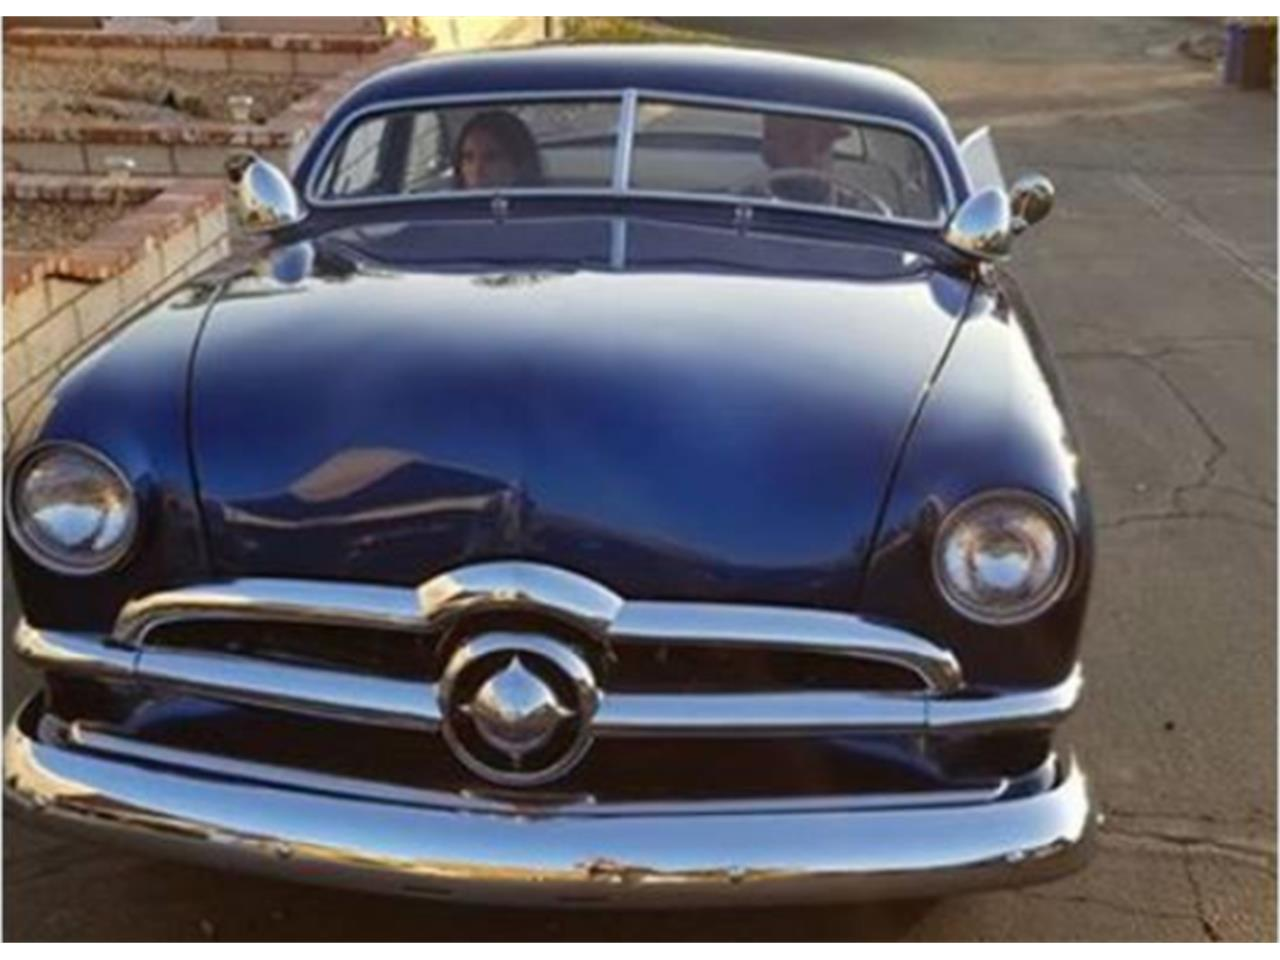 Large Picture of '50 Ford Tudor located in California - $58,000.00 Offered by a Private Seller - PZ3K